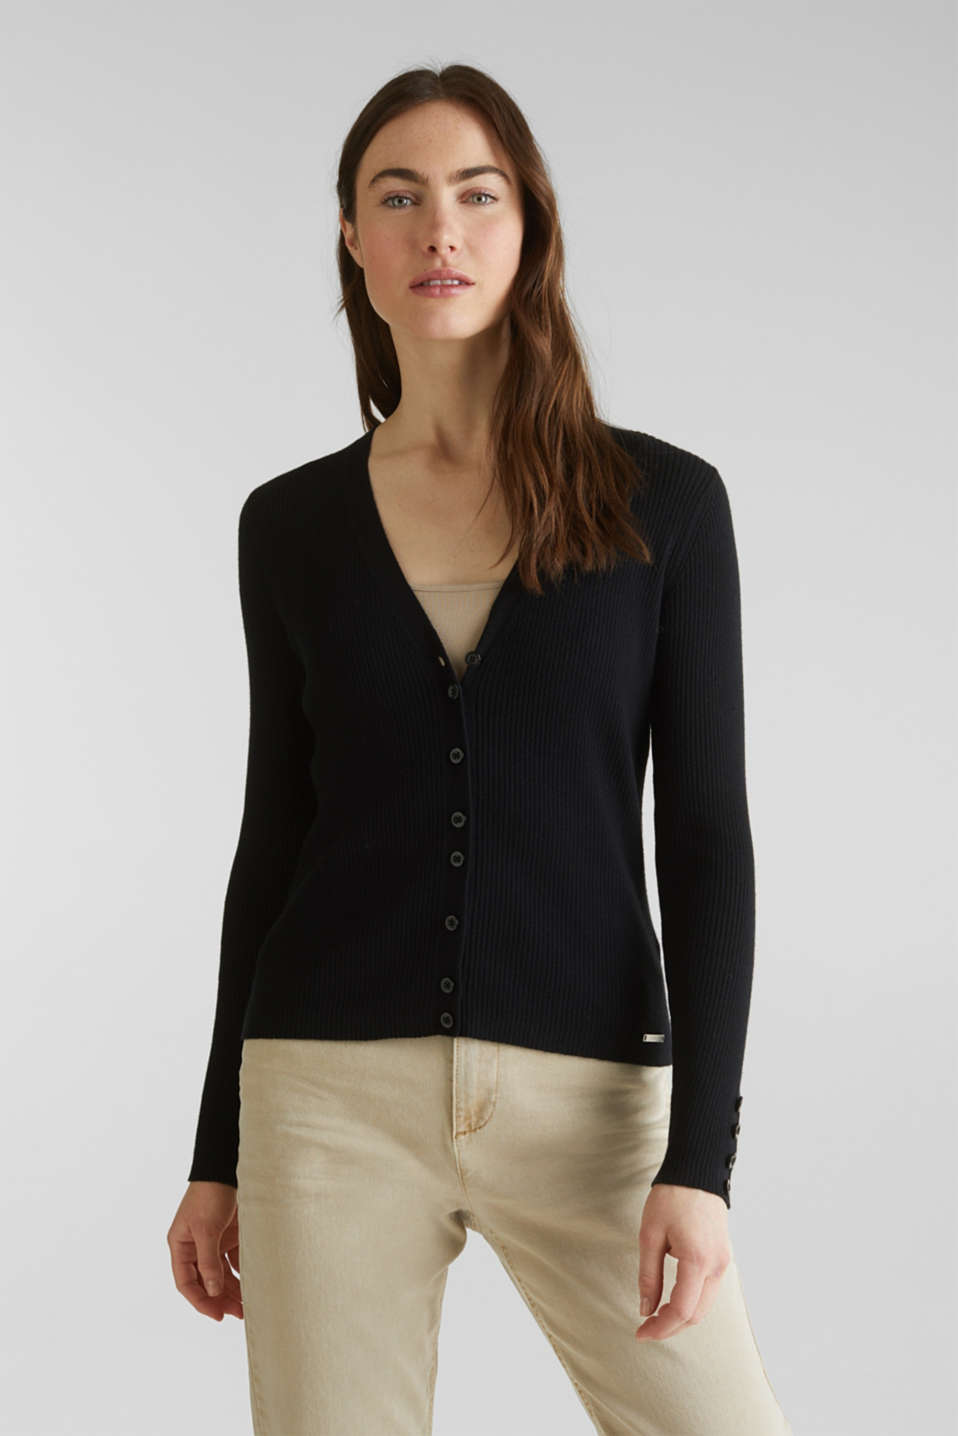 With silk: Ribbed knit cardigan